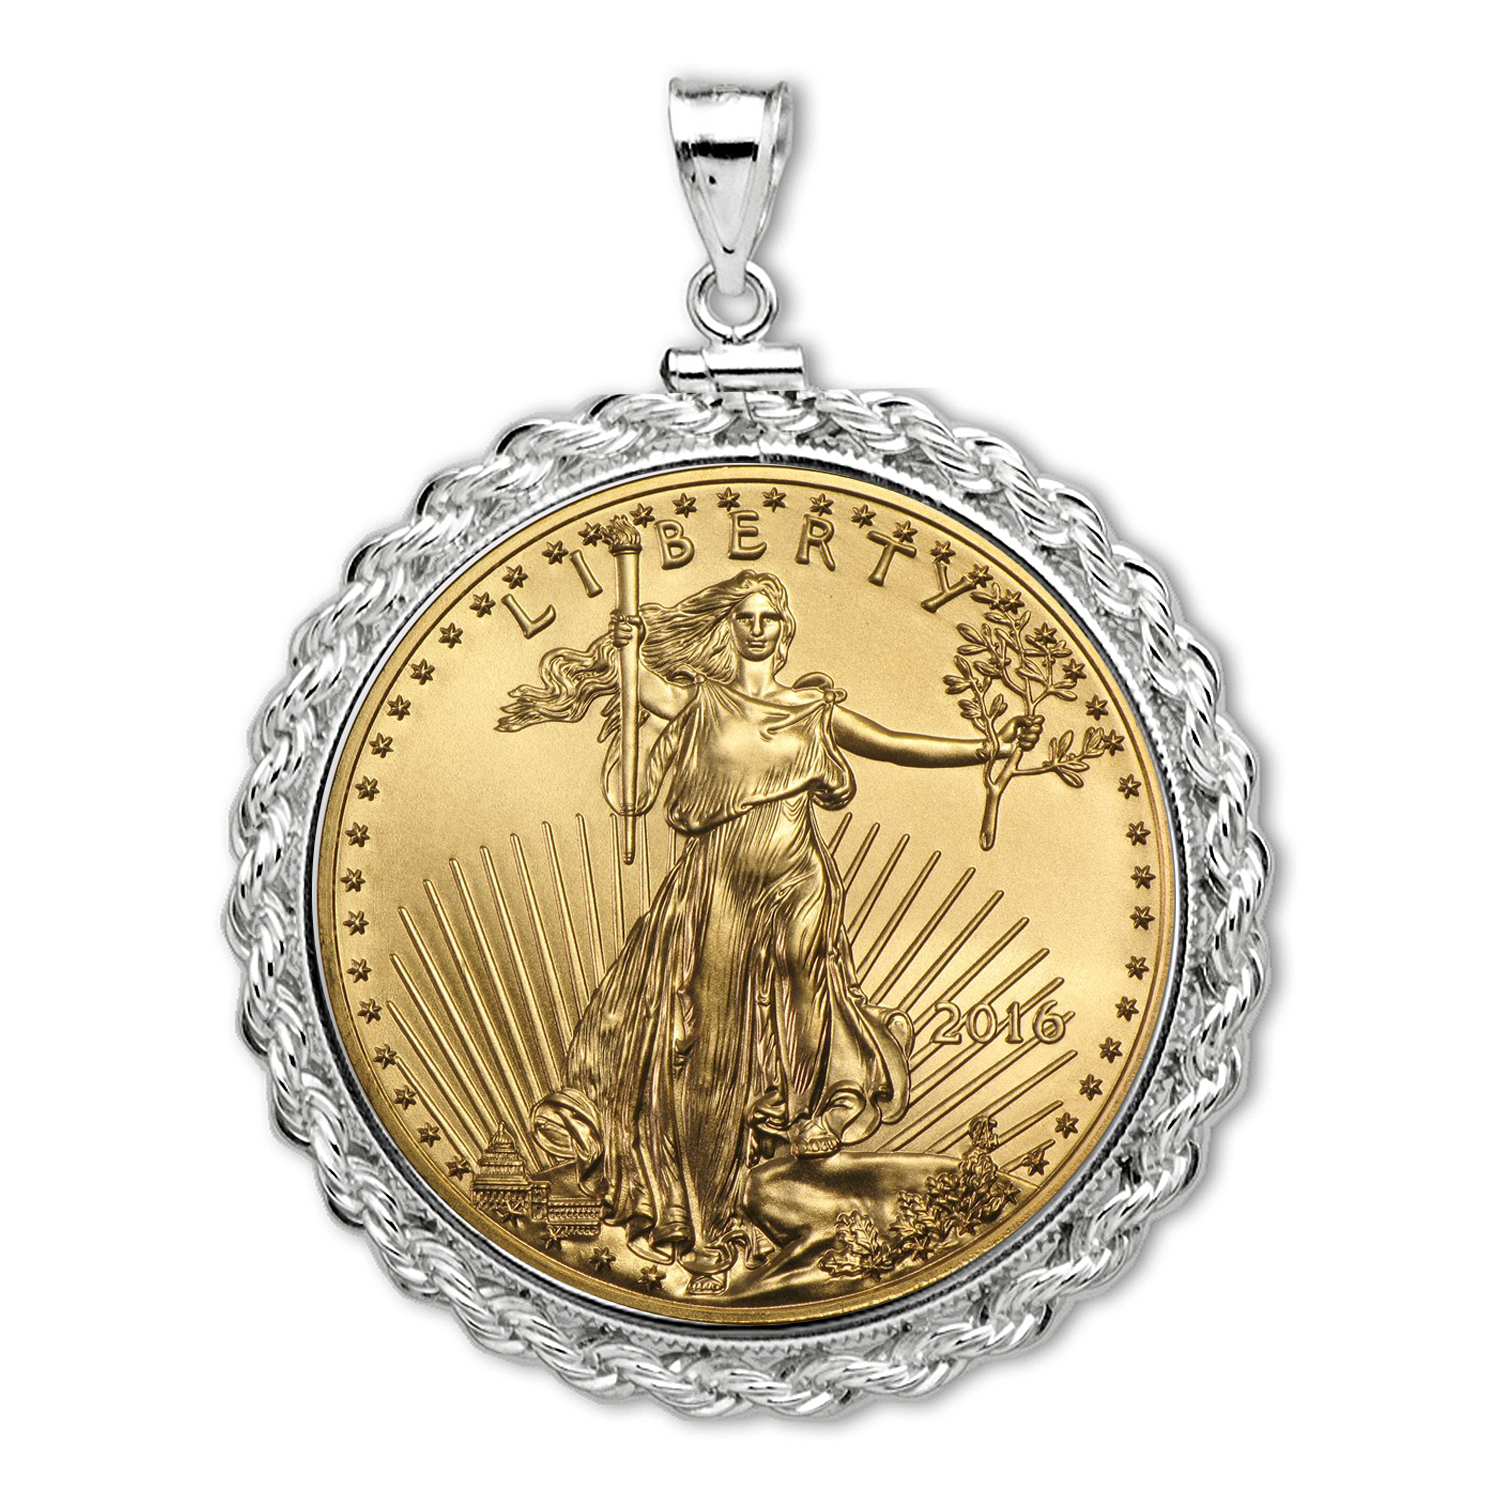 2016 1/2 oz Gold Eagle White Gold Pendant (Rope-ScrewTop Bezel)